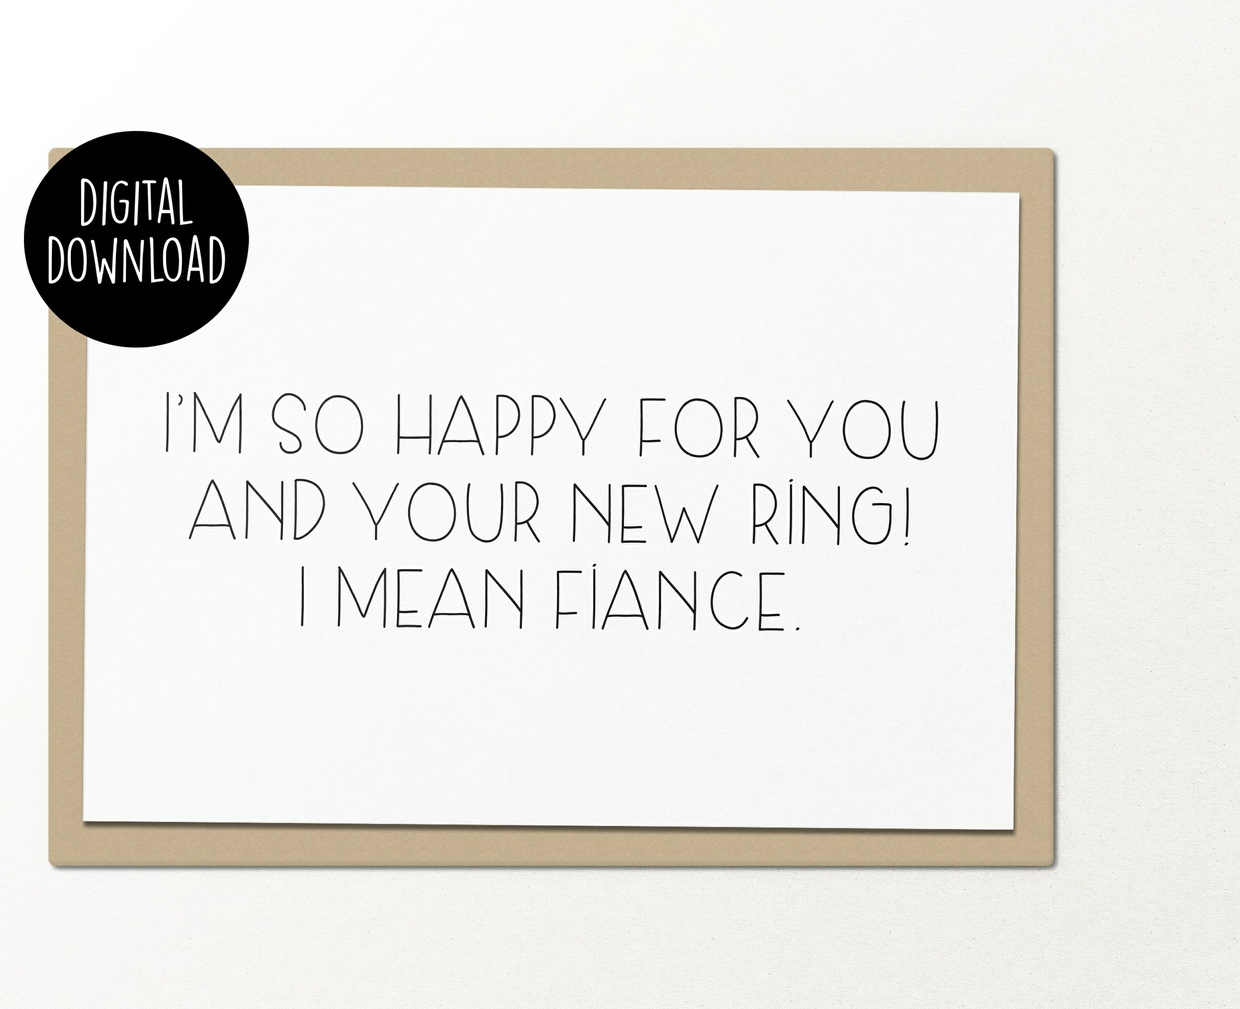 I'm so happy for you and your new ring I mean fiance printable greeting card